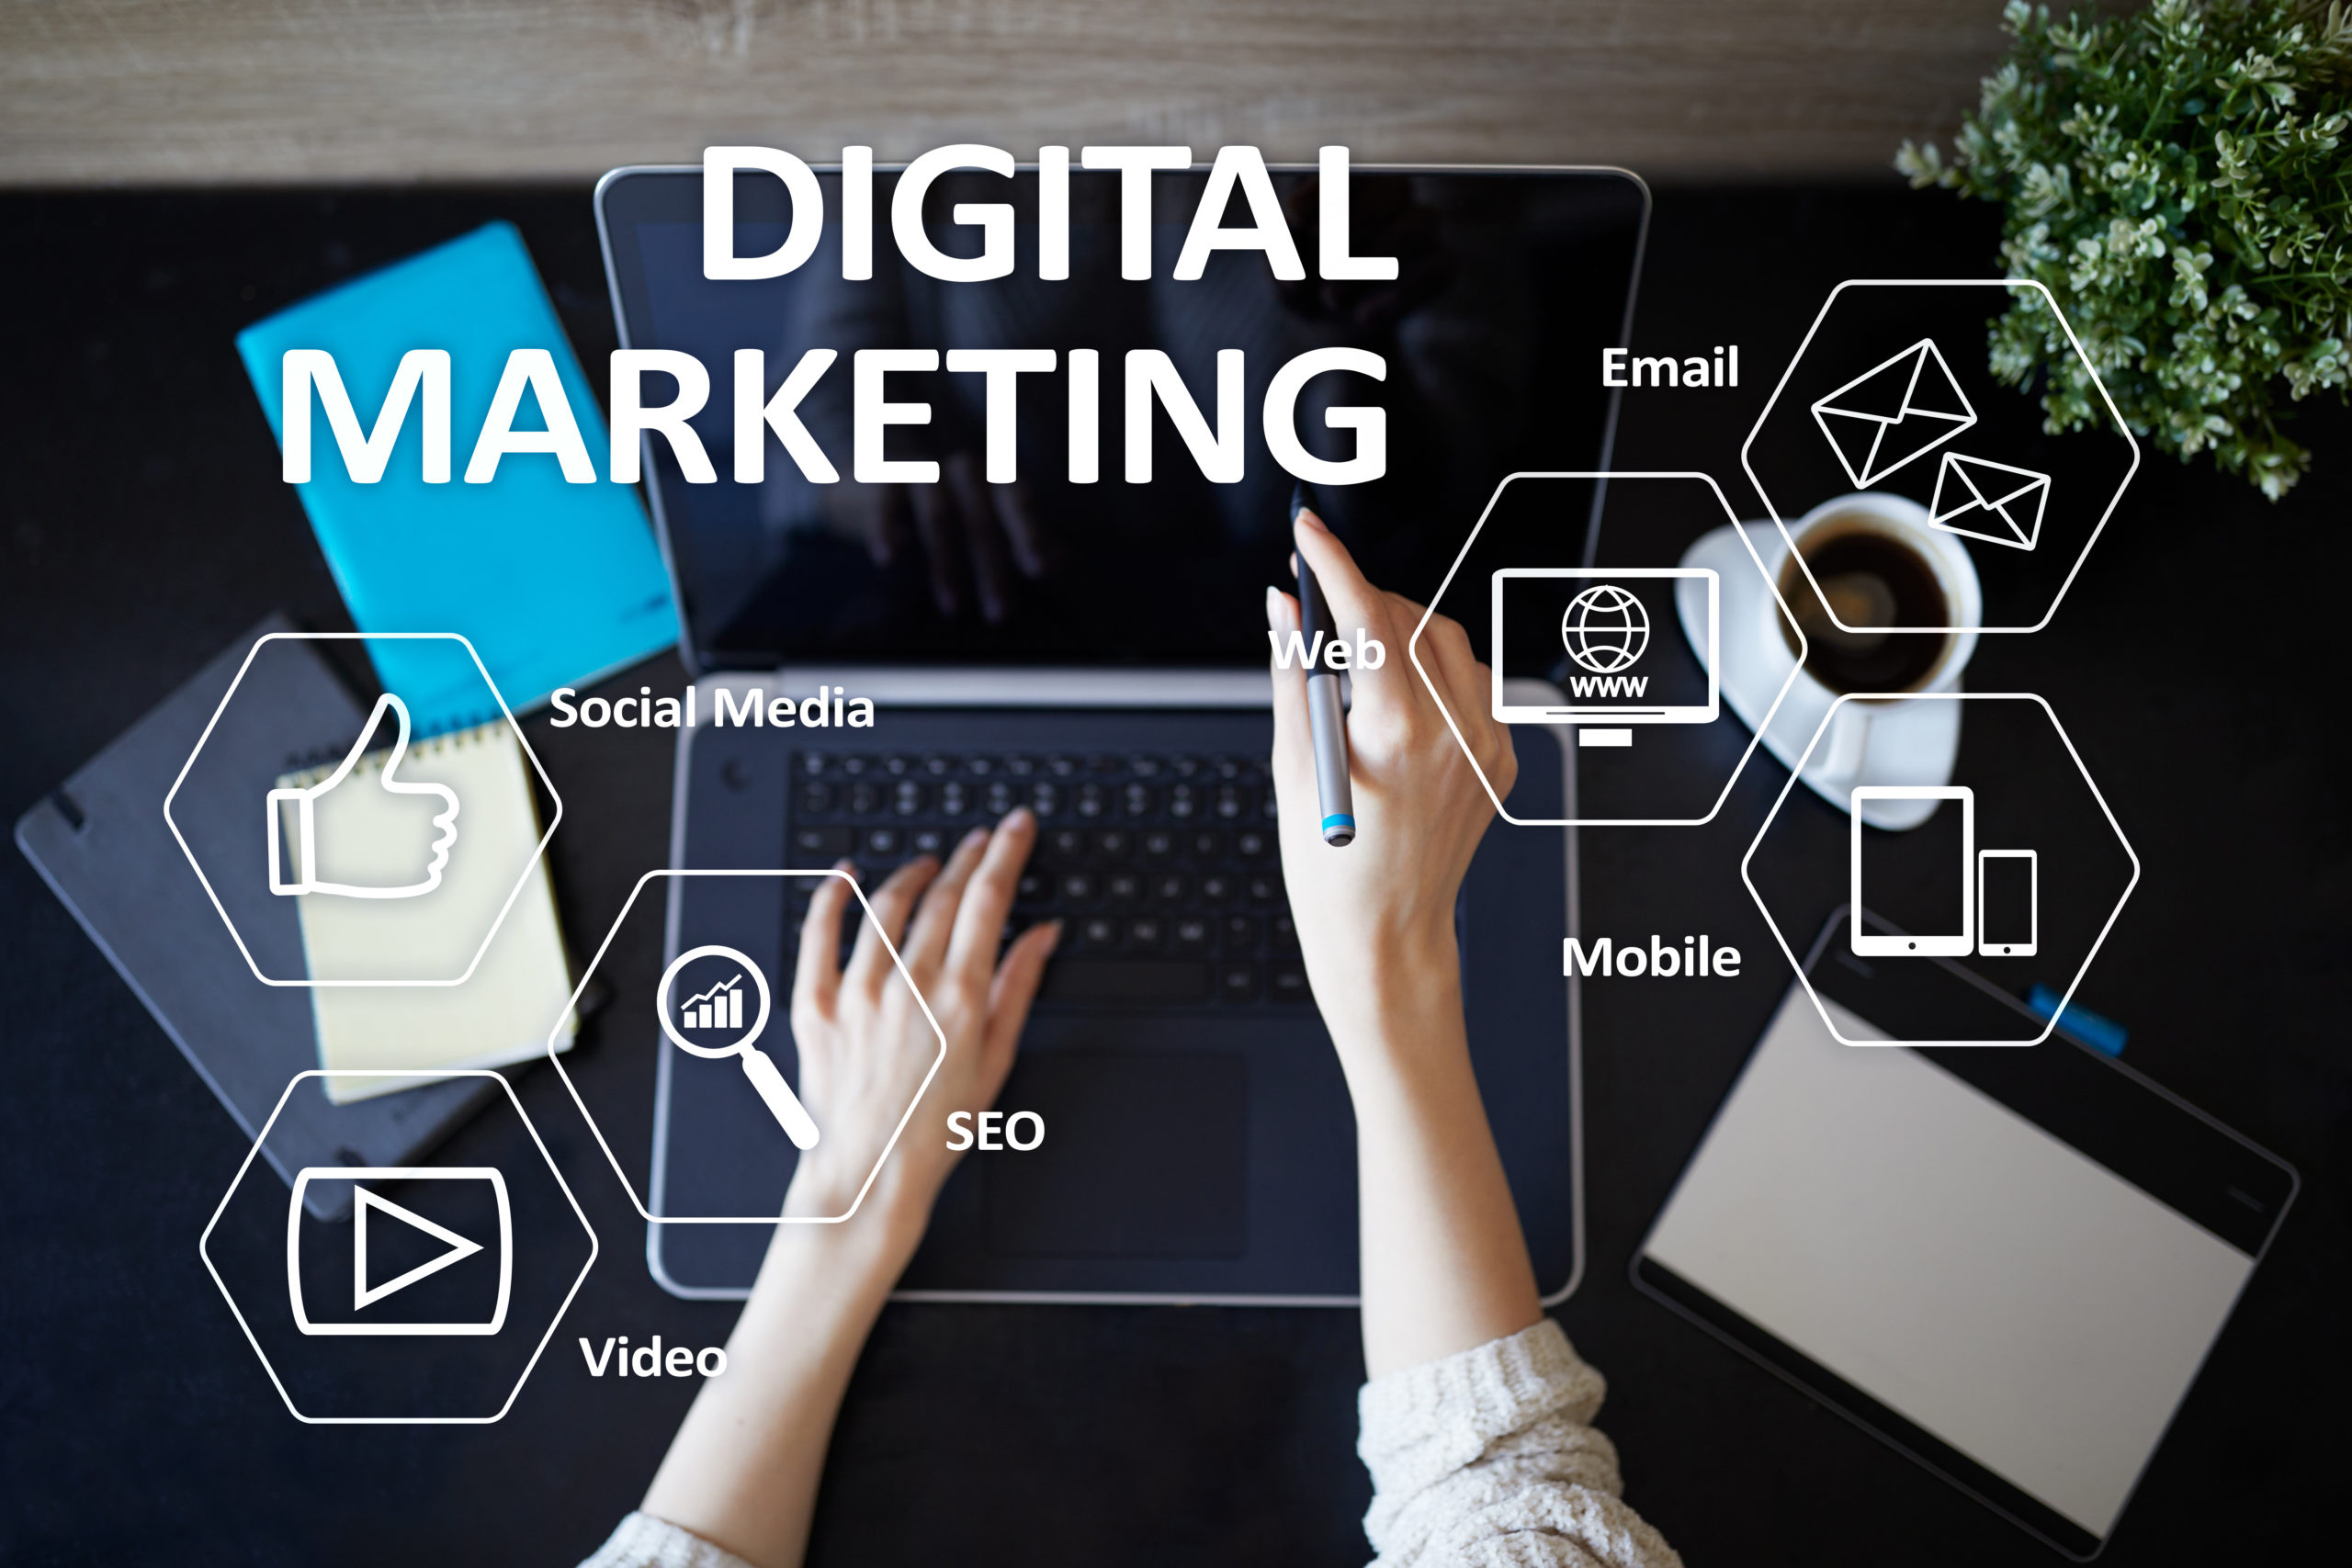 Digital Marketing Is The Solution That Businesses Need To Build An Online Presence